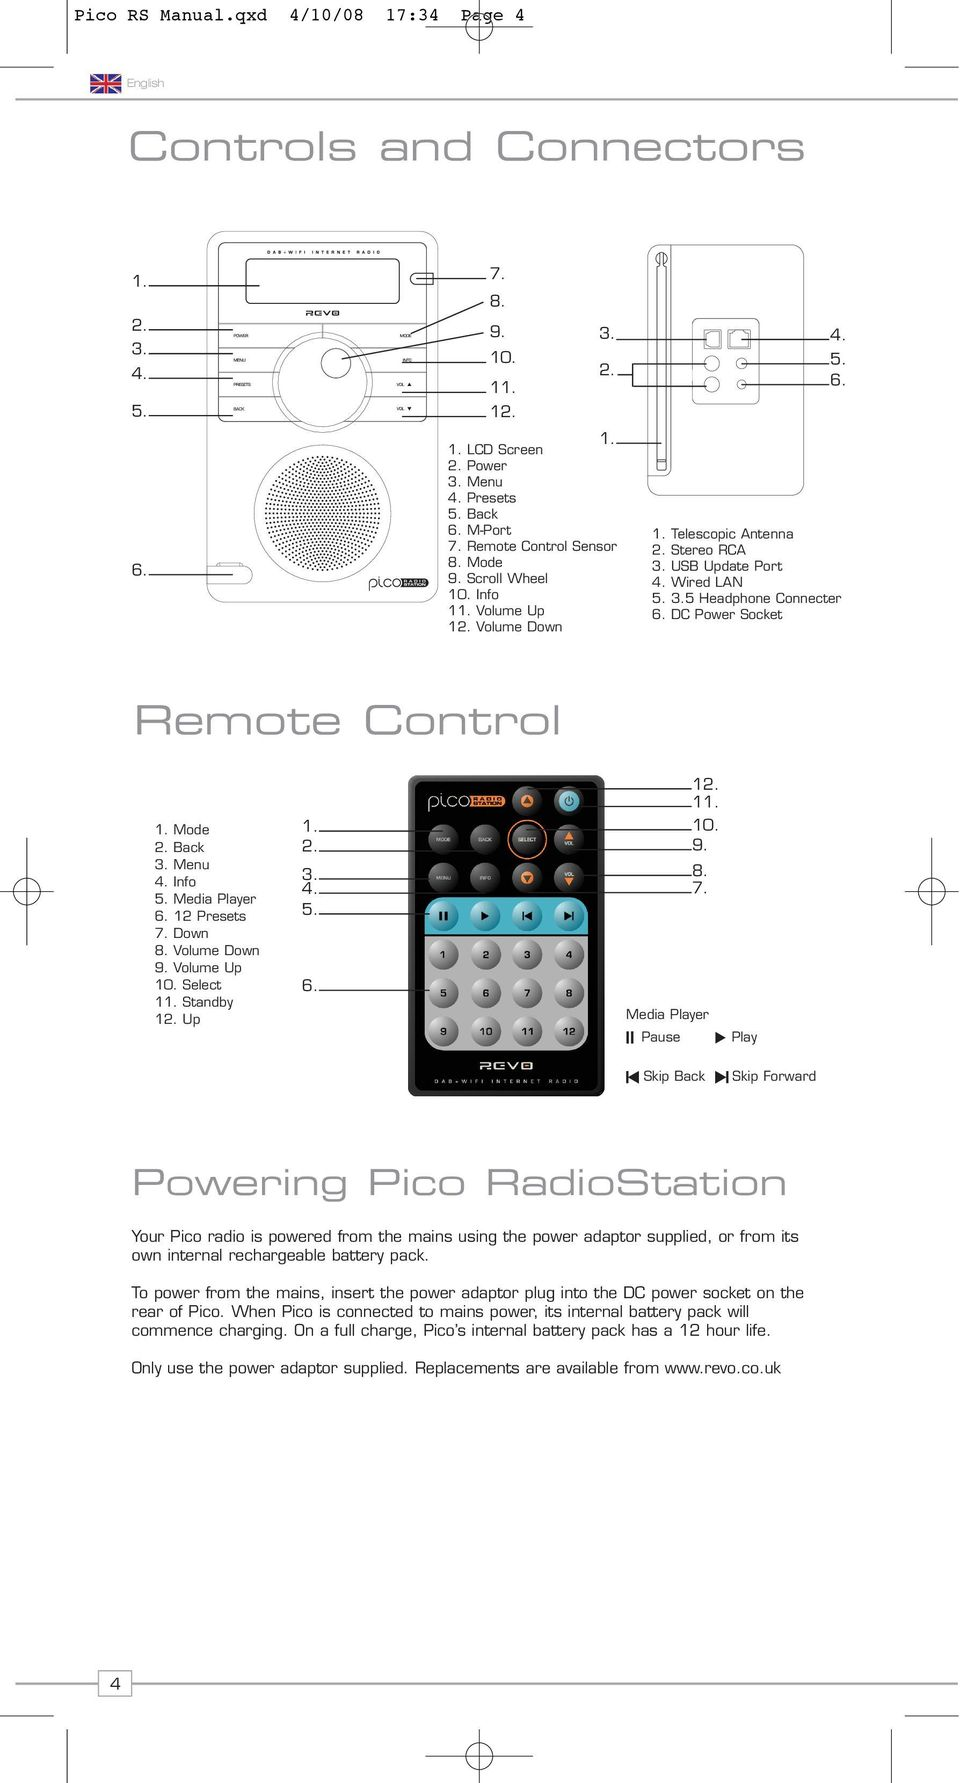 DC Power Socket Remote Control 1. Mode 2. Back 1. 2. 10. 9. 3. Menu 4. Info 3. 8. 4. 7. 5. Media Player 6. 12 Presets 5. 7. Down 8. Volume Down 9. Volume Up 10. Select 6. 11. Standby 12.